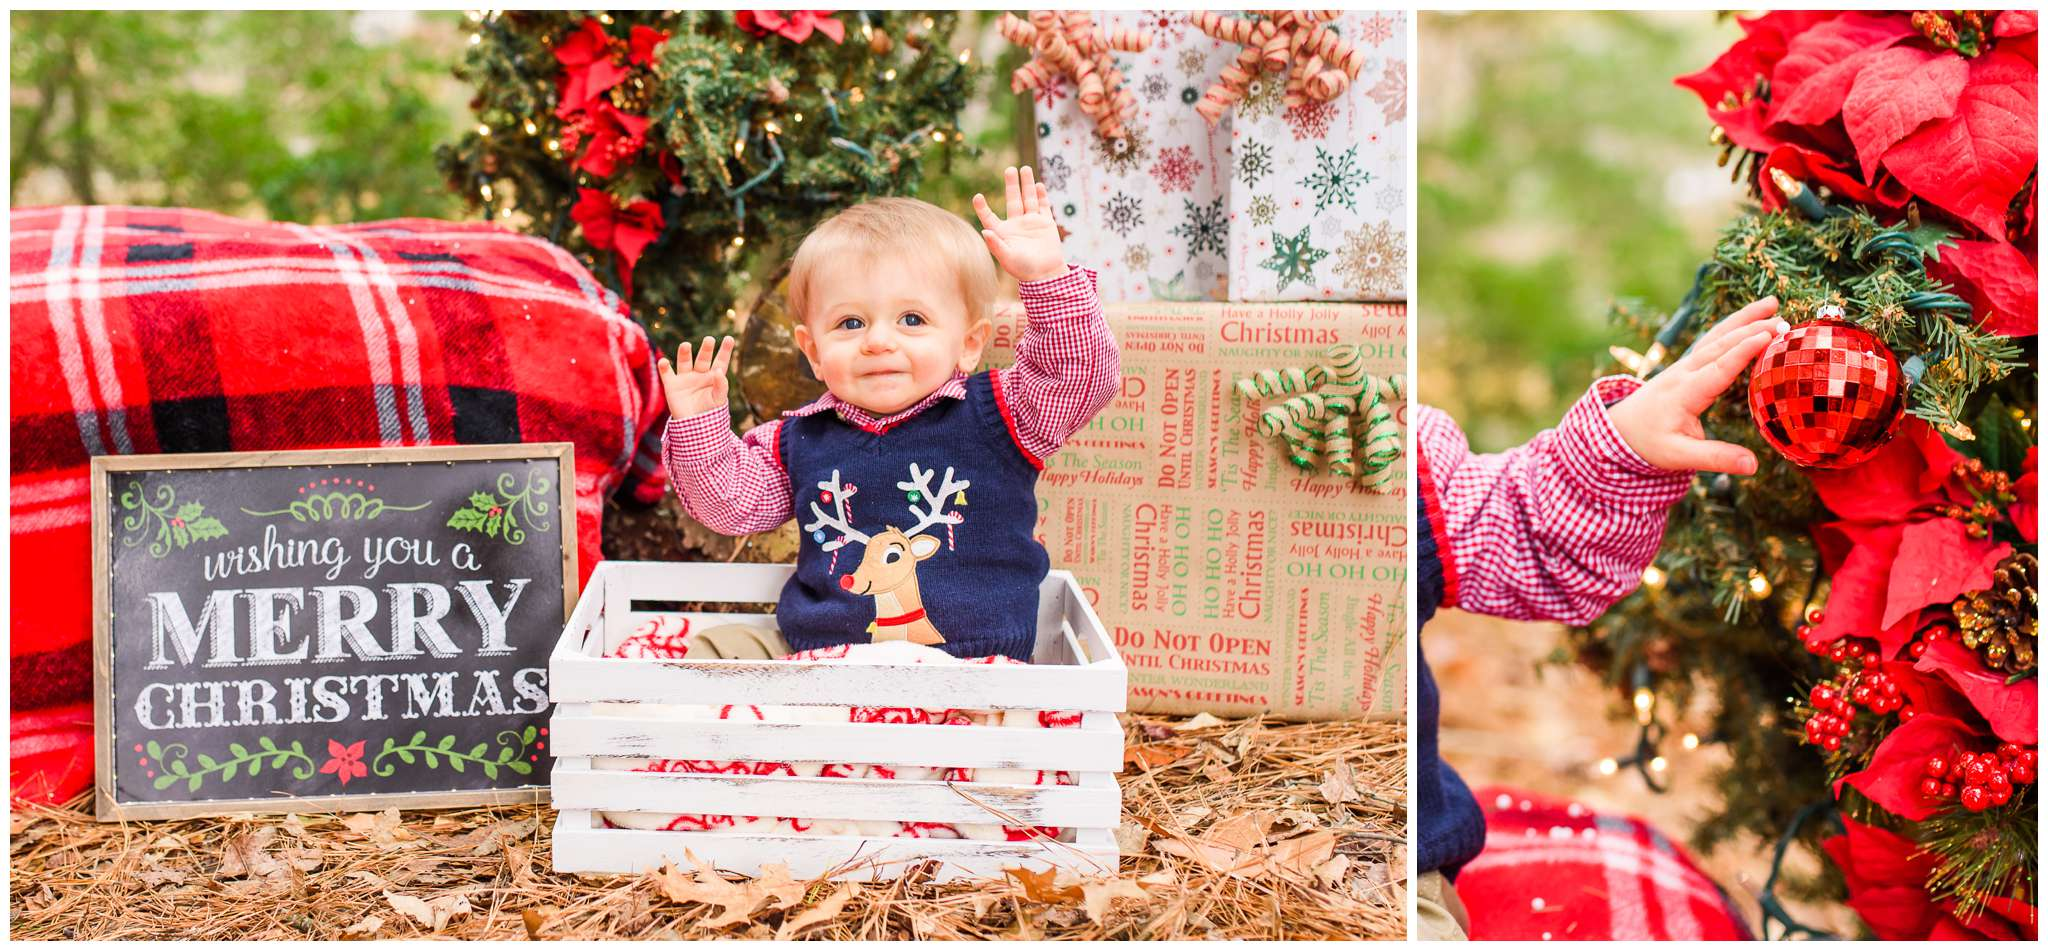 This little cutie is Carter! Look at that little hand on the ornament. He was just perfect for his photo shoot!